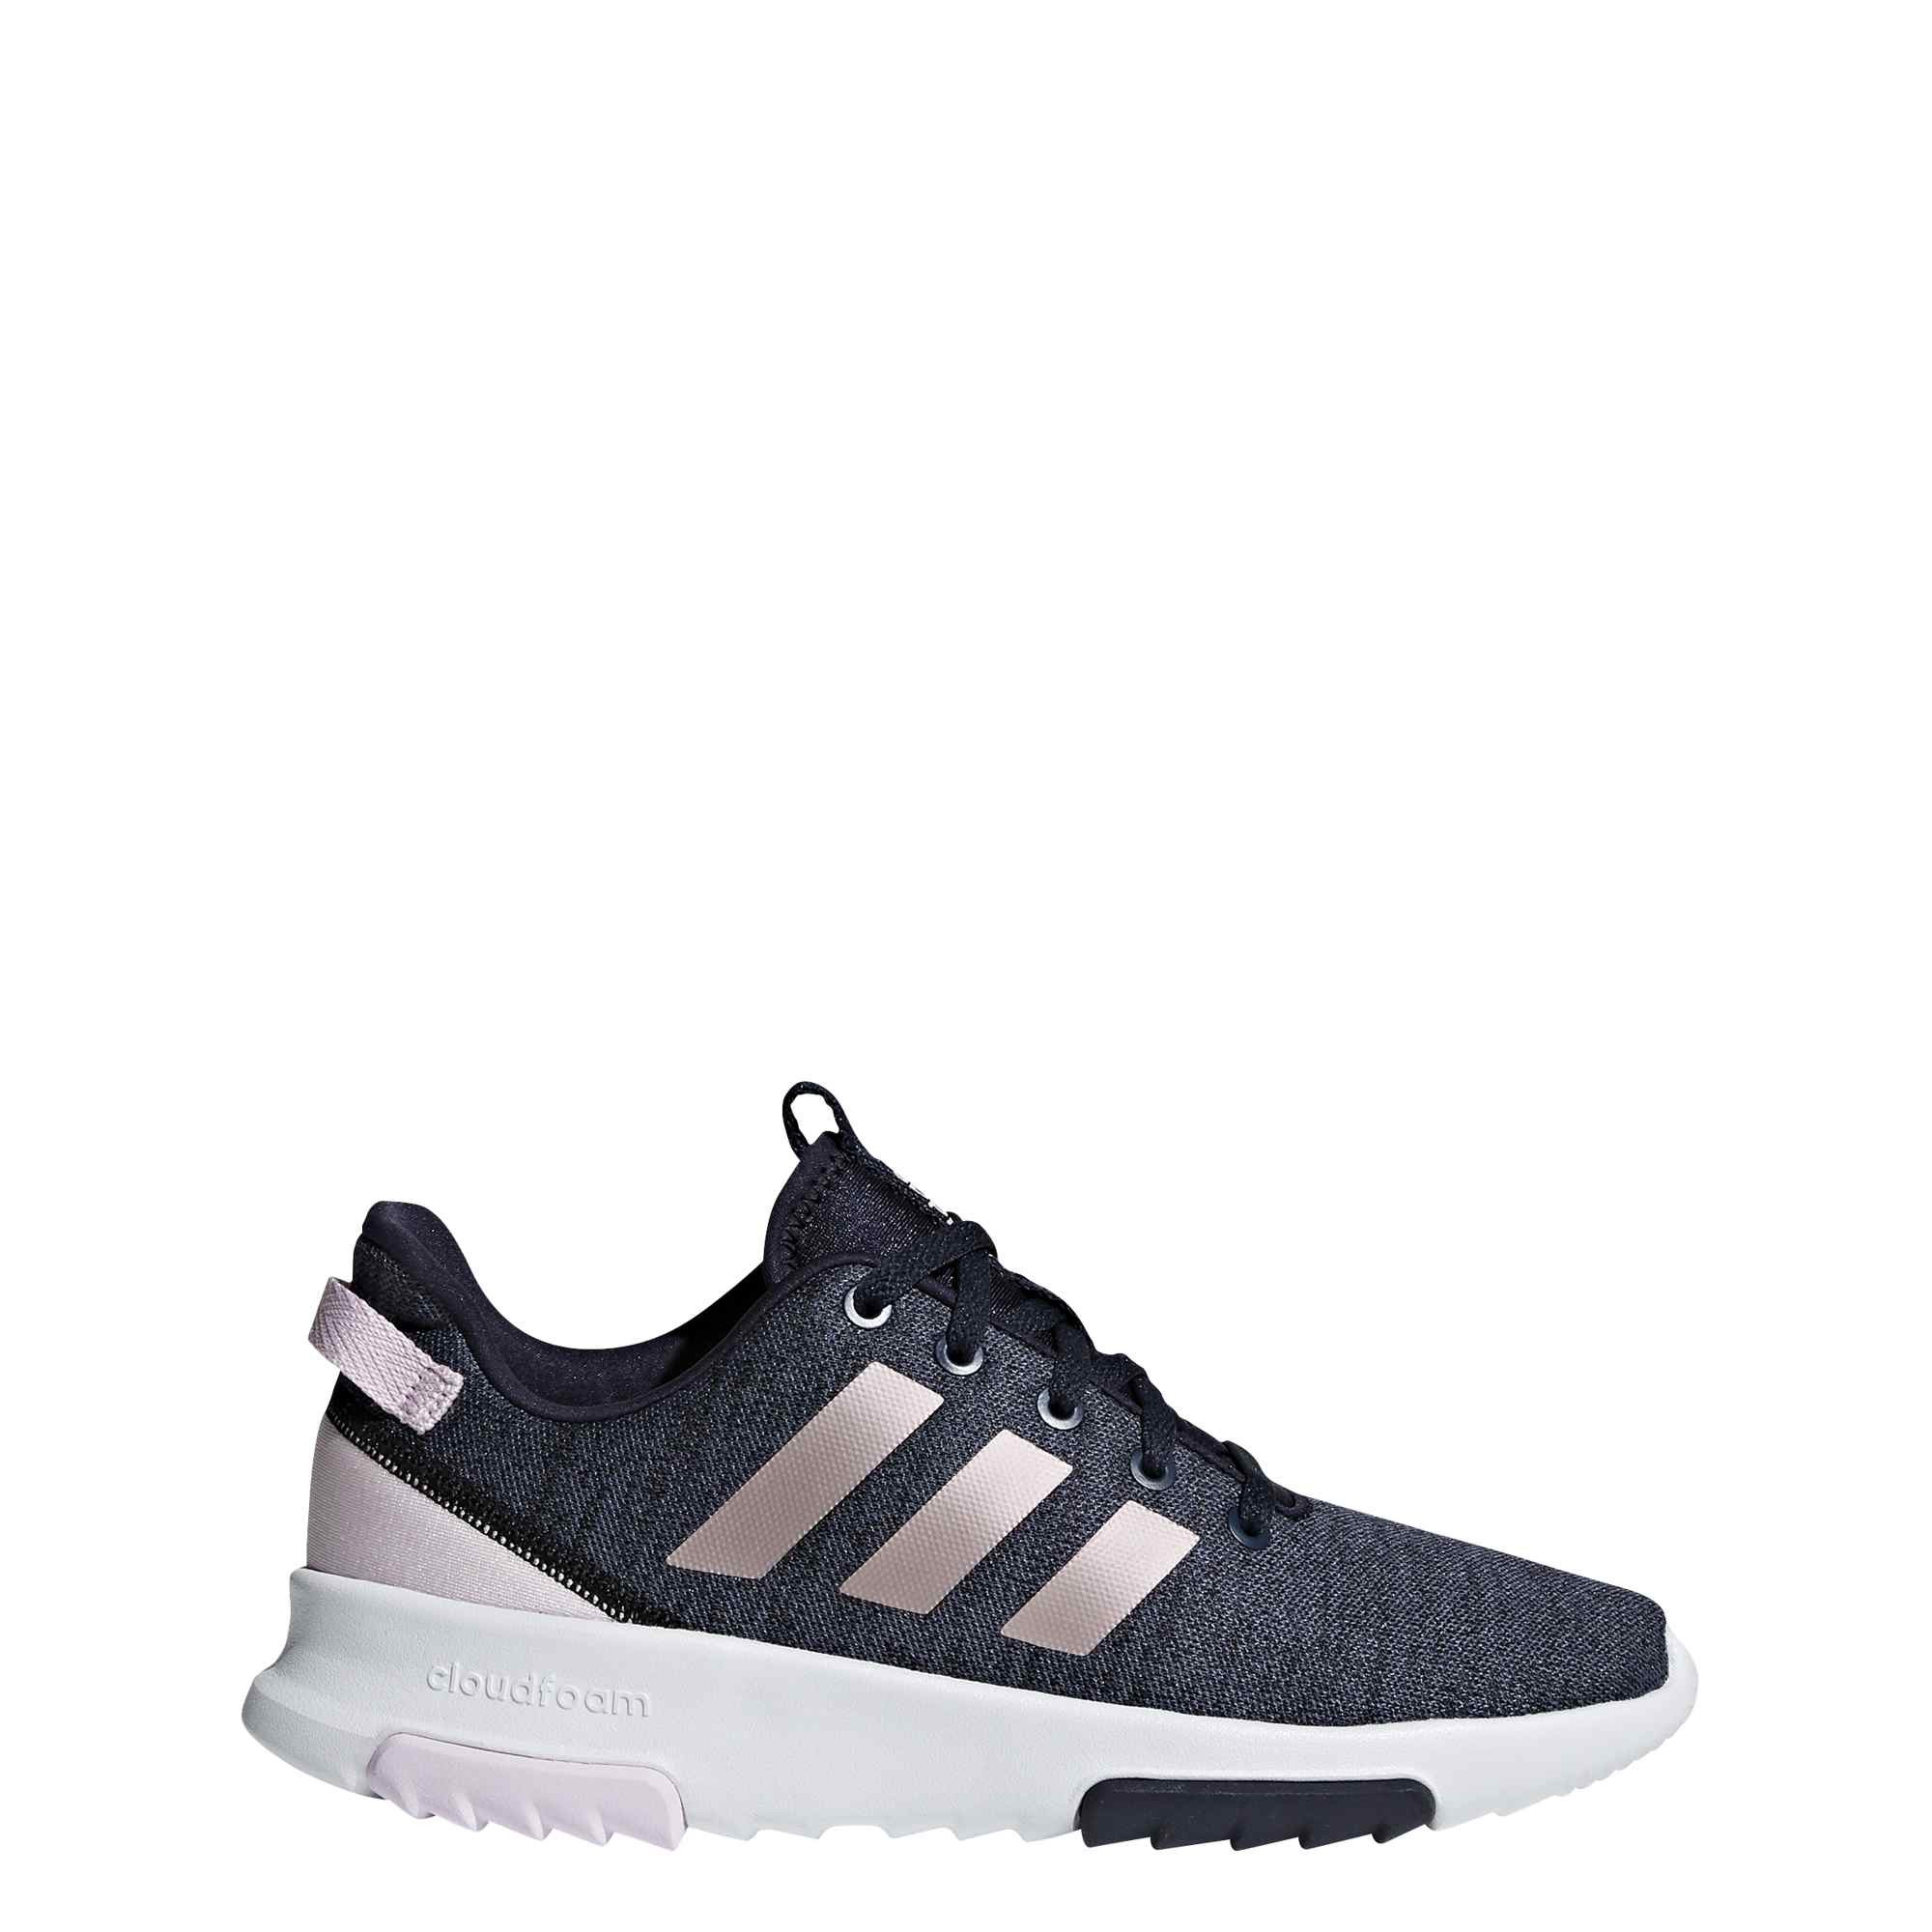 234051408fd Adidas Cloudfoam Racer Tr Junior - Schoenen - Casual - Intersport ...